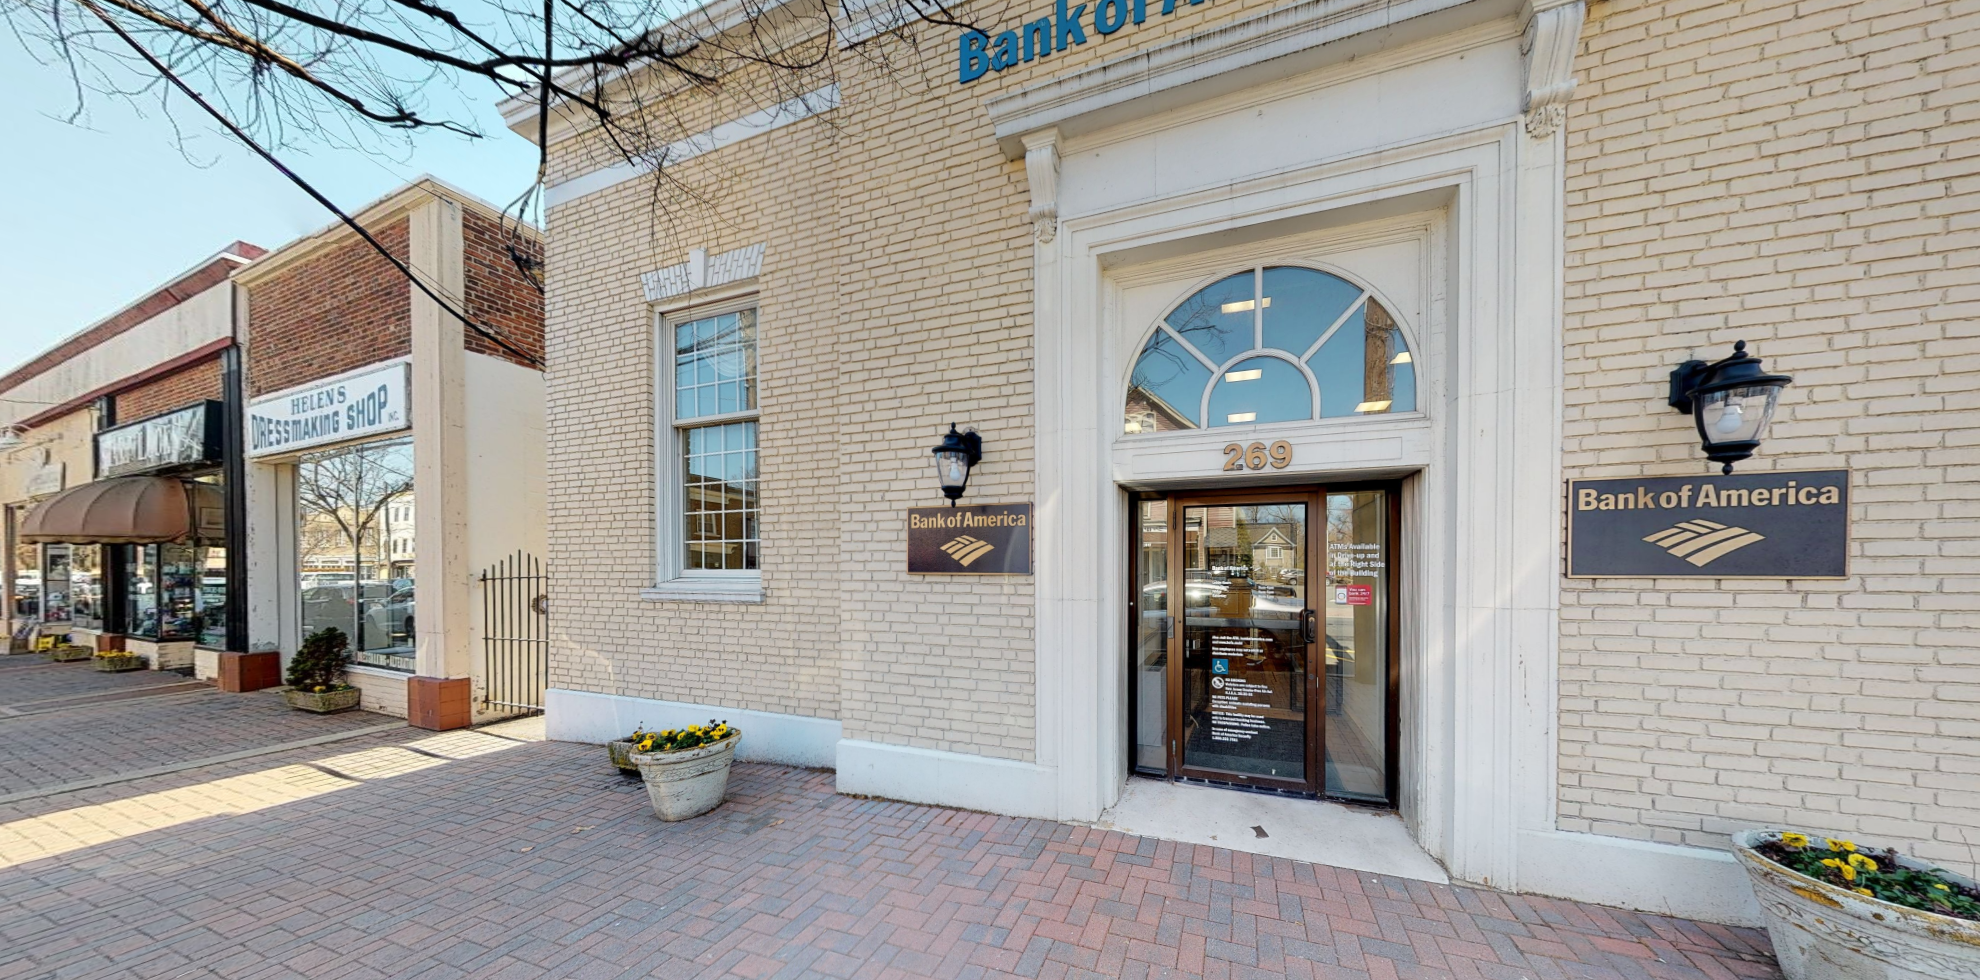 Bank of America financial center with drive-thru ATM | 269 Main St, Chatham, NJ 07928